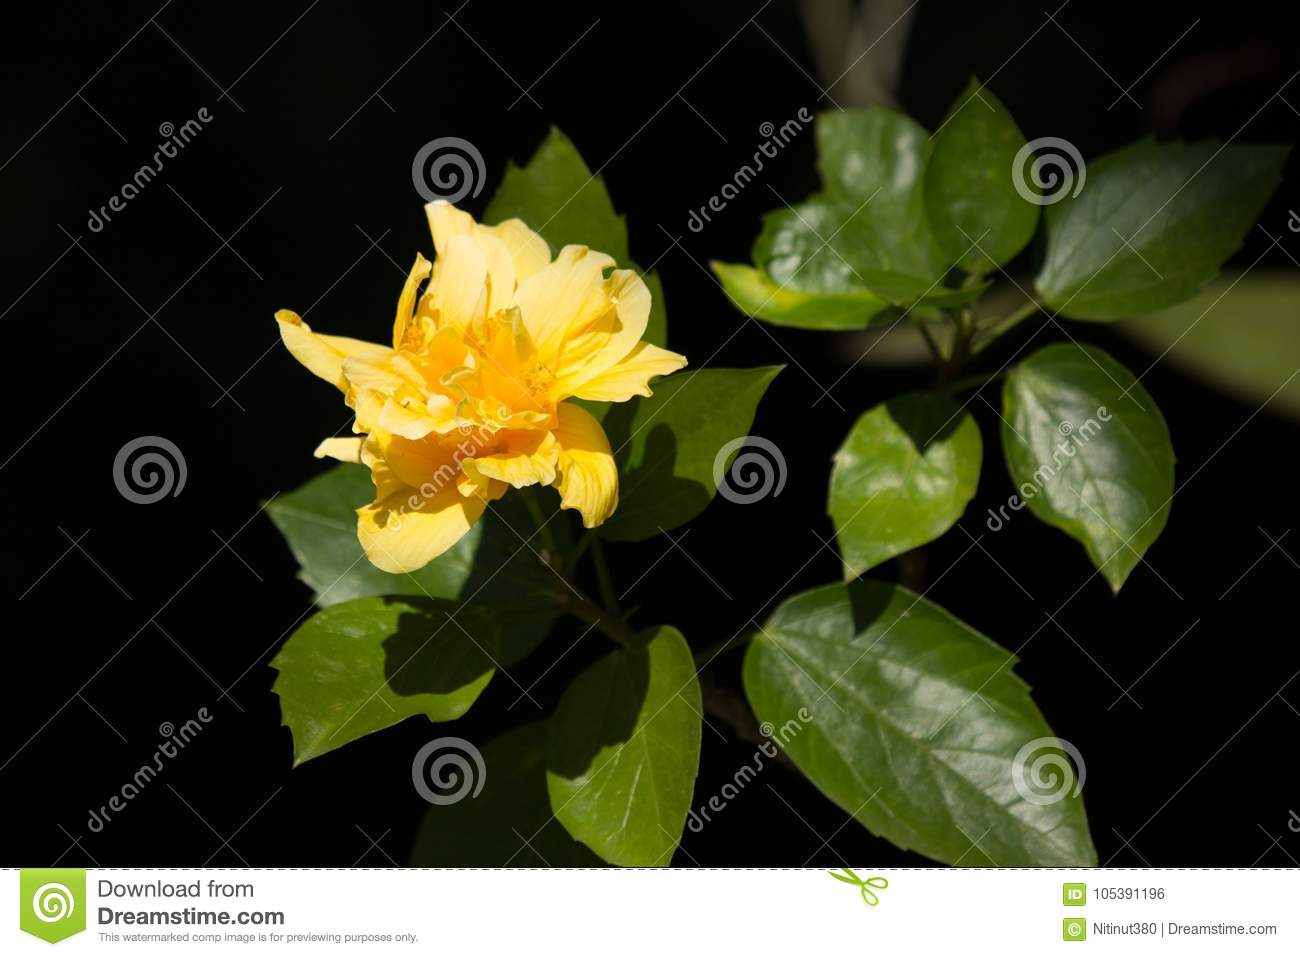 Yellow hibiscus flower in black dard background stock photo image download yellow hibiscus flower in black dard background stock photo image of macro green izmirmasajfo